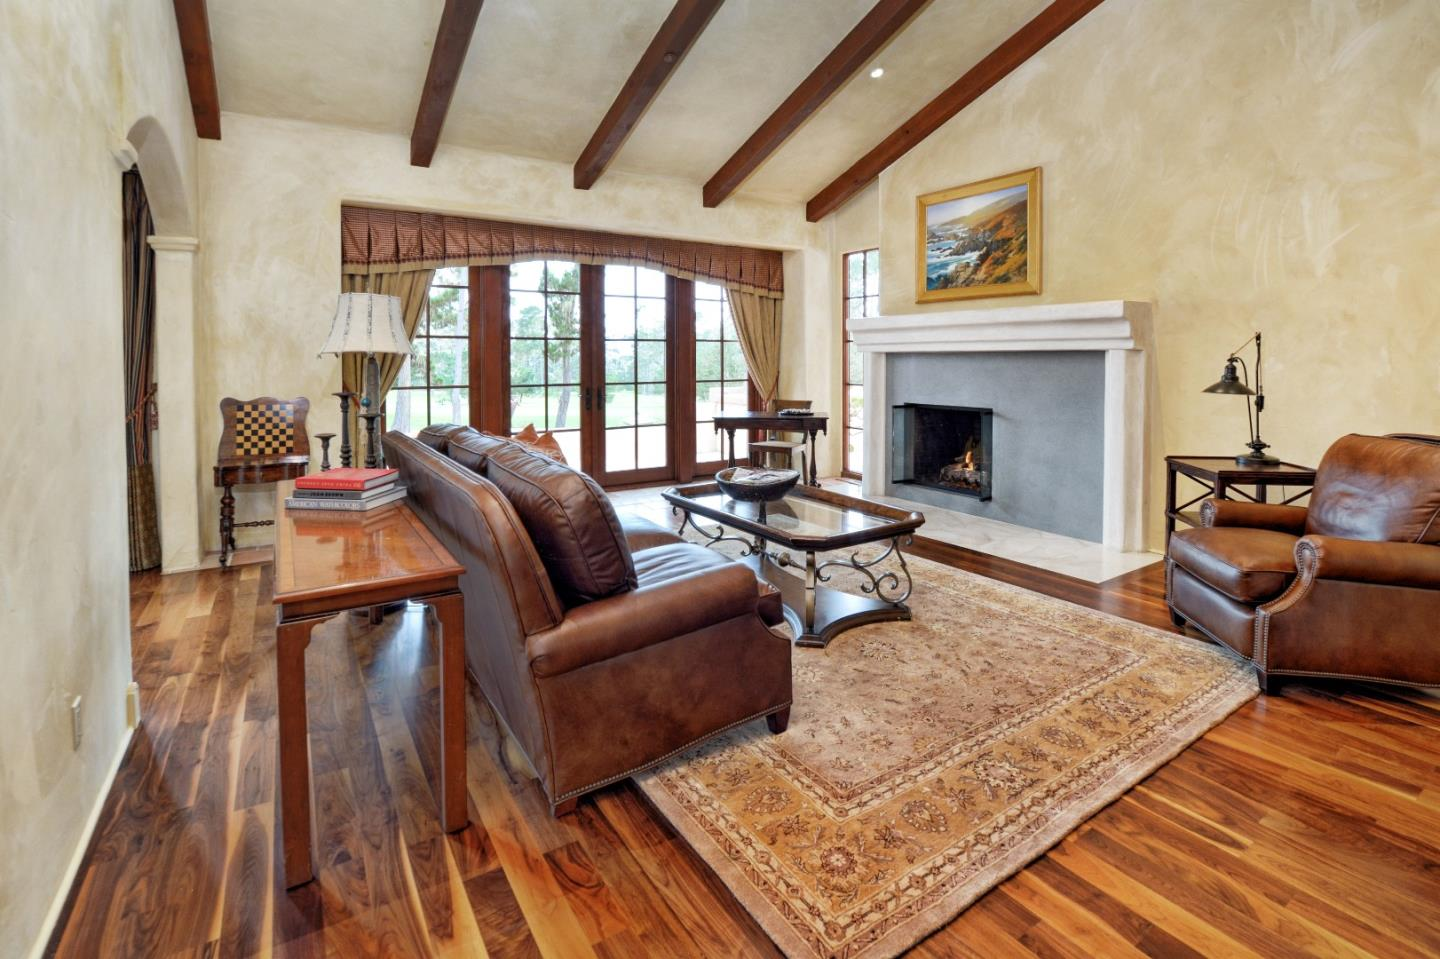 Additional photo for property listing at 1205 Benbow Pl  PEBBLE BEACH, CALIFORNIA 93953